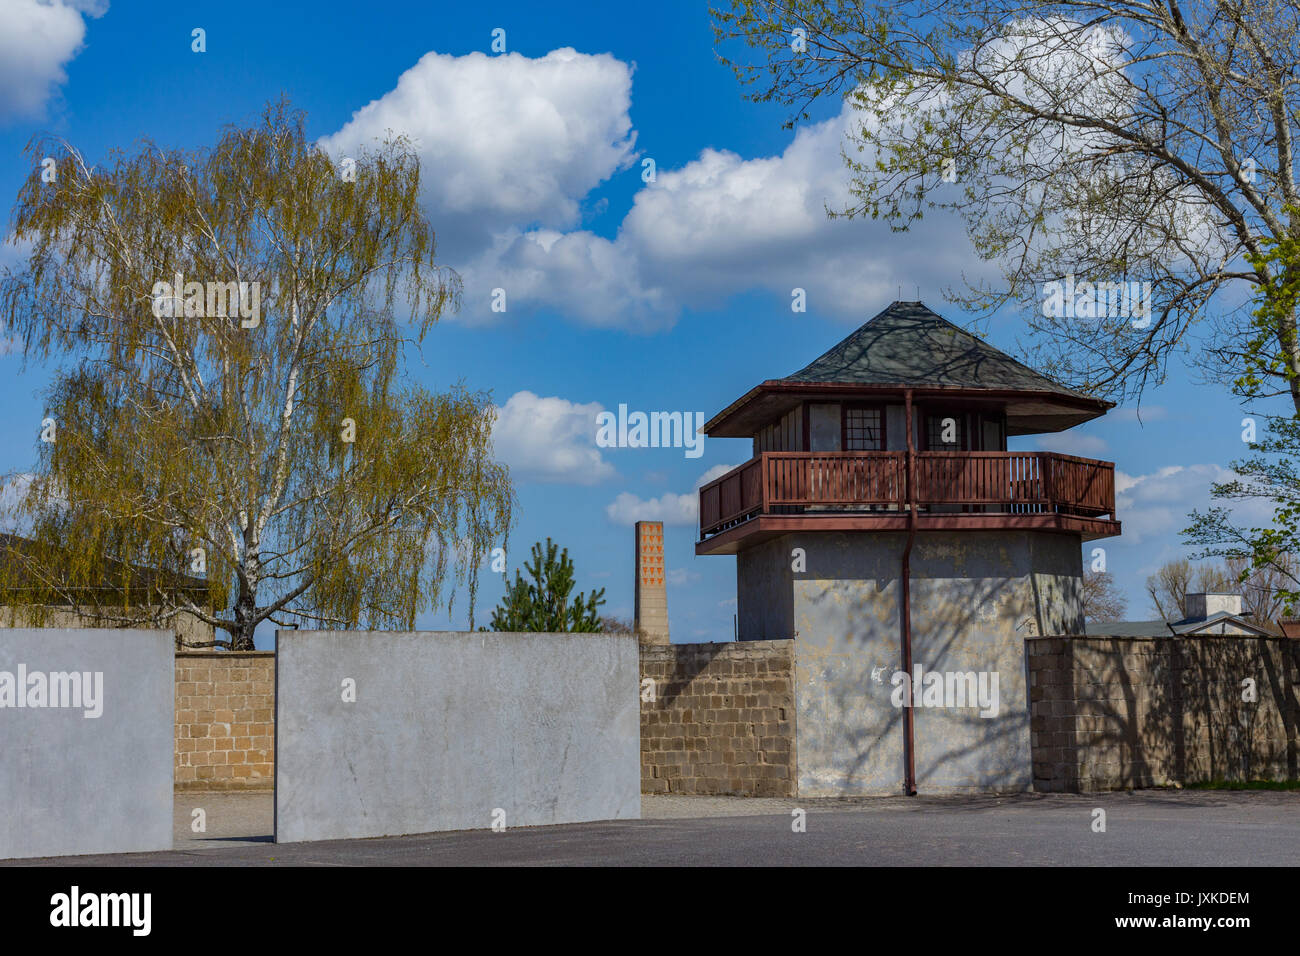 Perimeter and watchtower at the Sachsenhausen concentration camp memorial site - Stock Image